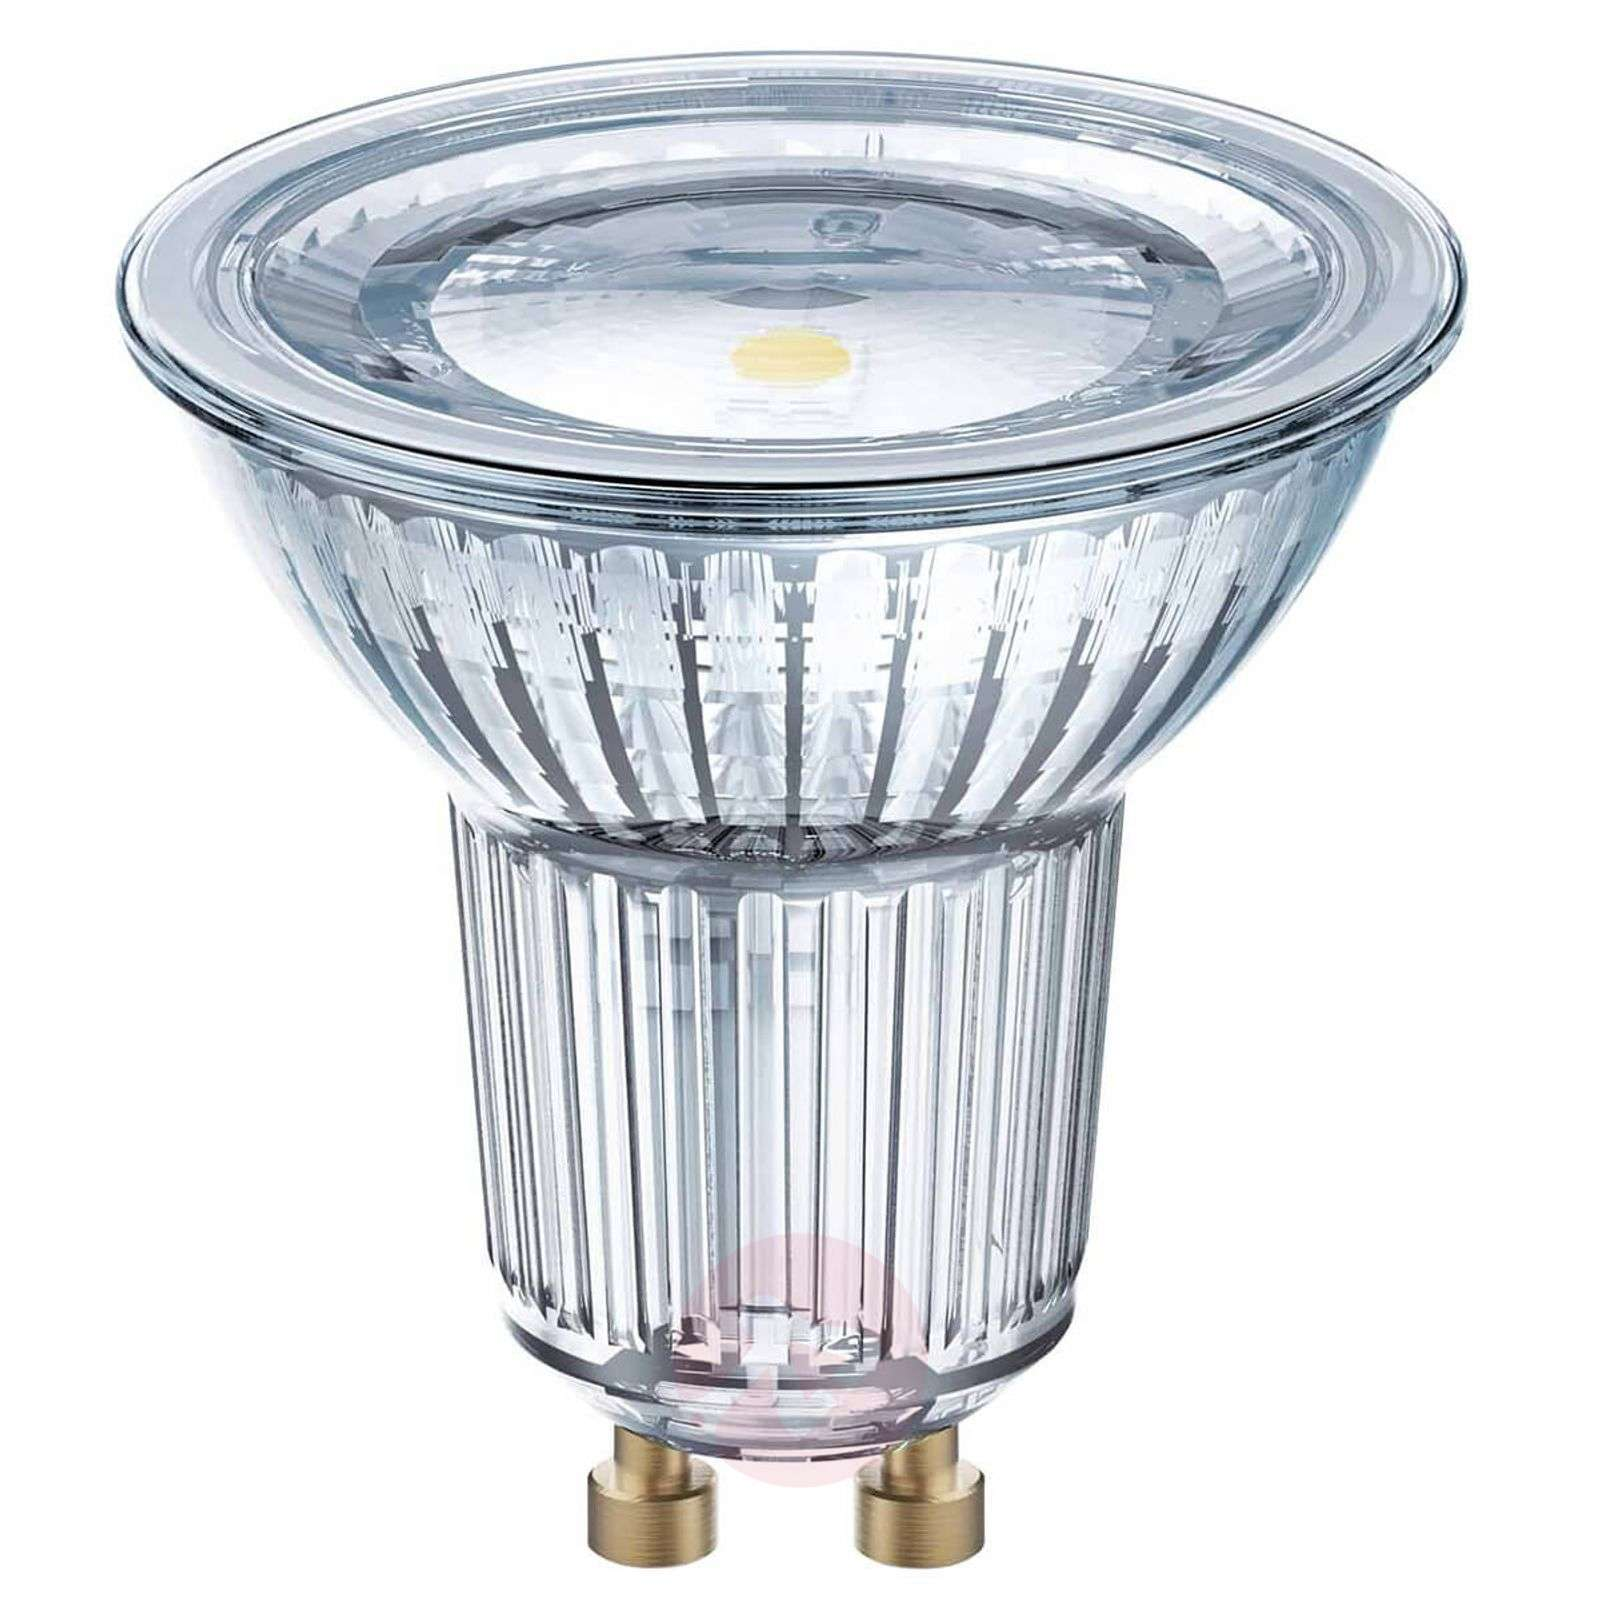 Réflecteur LED 120degree GU10 7,2W, dimmable-7262054X-01